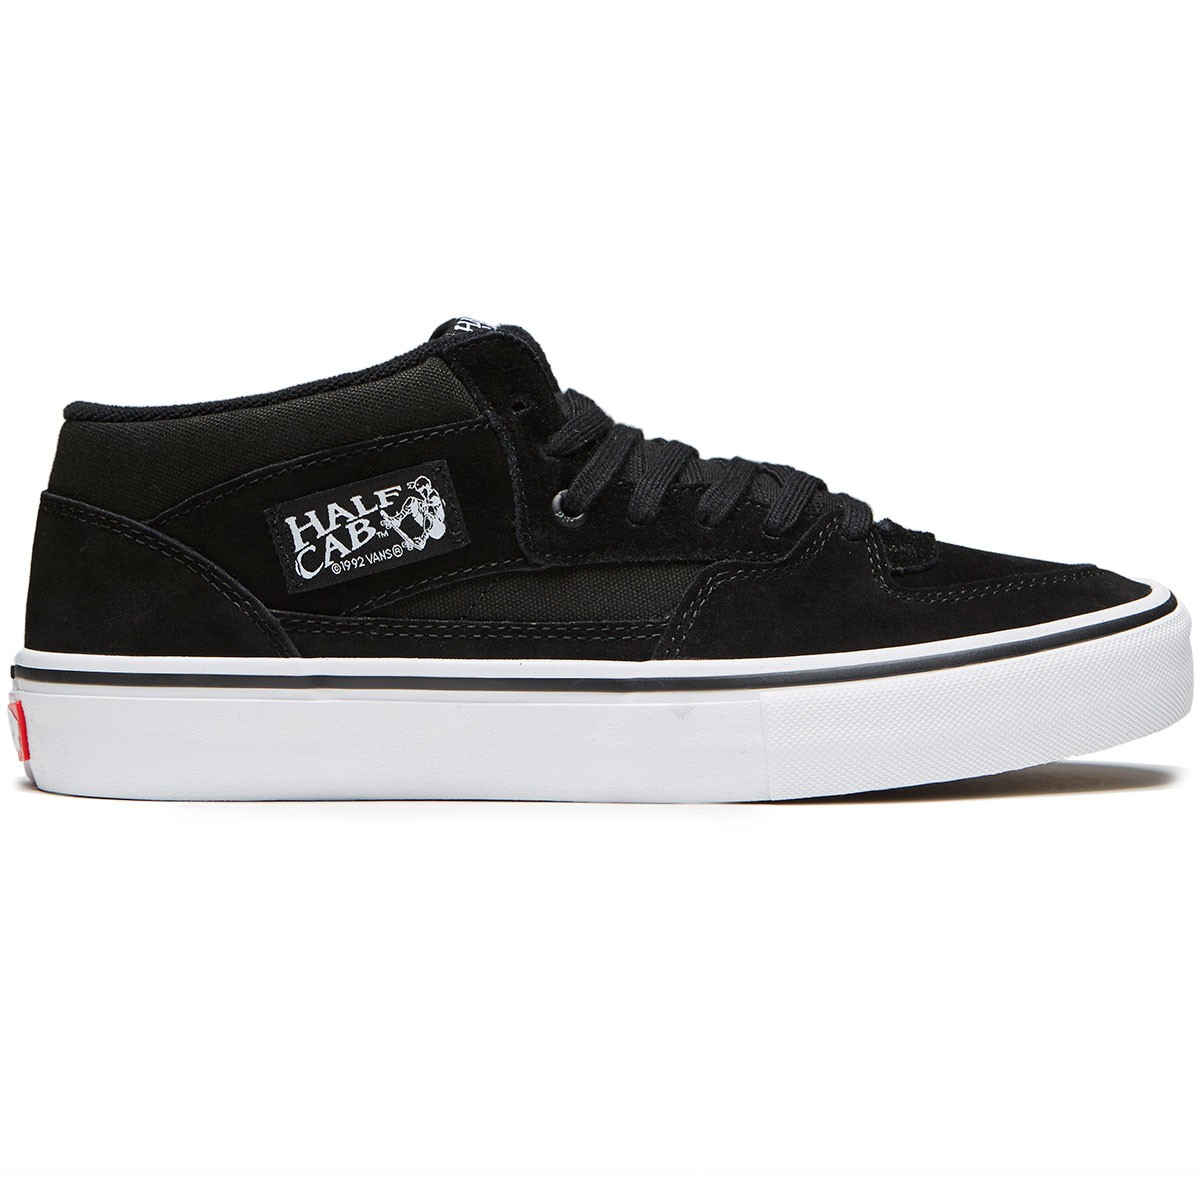 8f14fb42ceafc8 Vans Half Cab Pro Shoes - Black Black White - 8.0